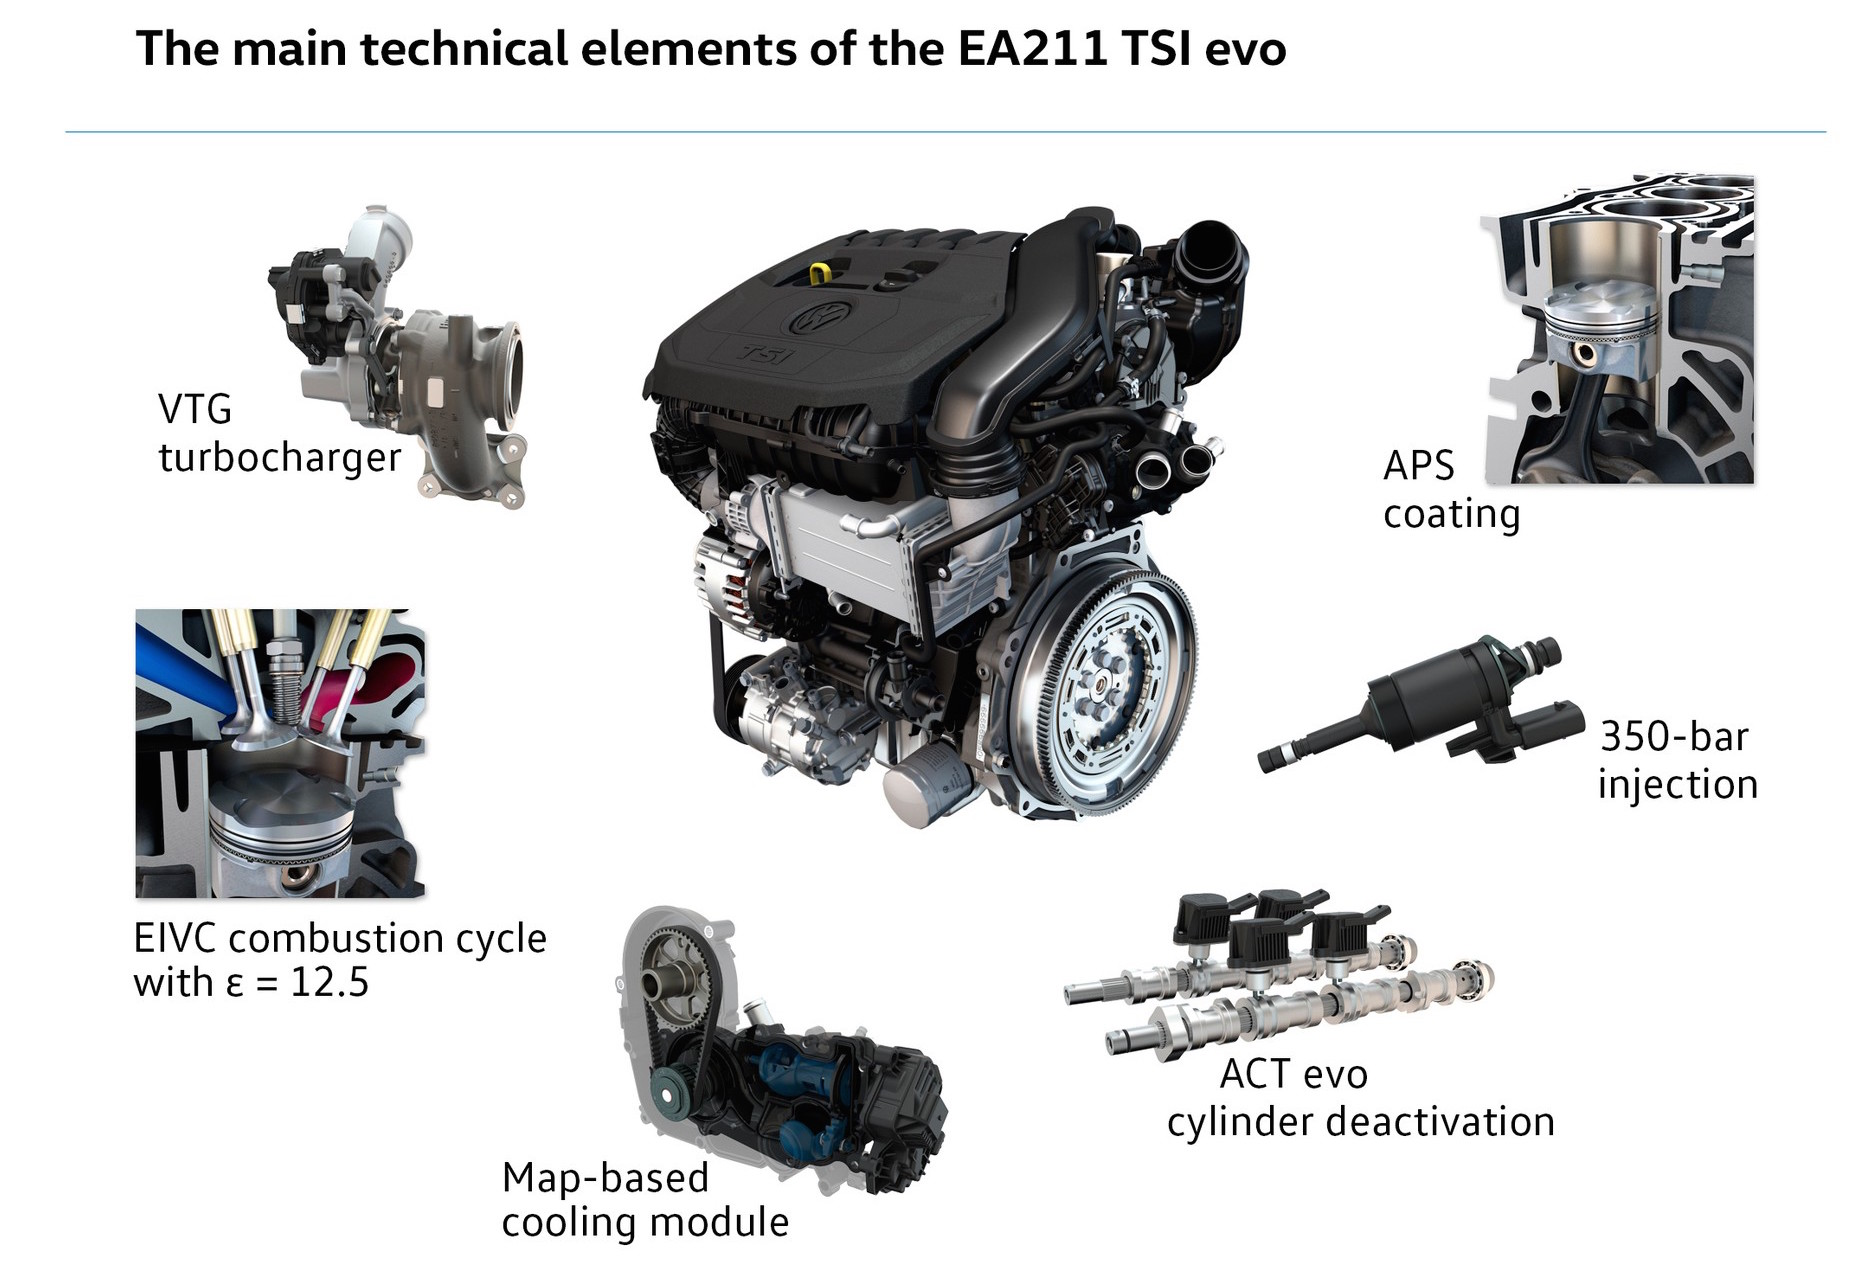 volkswagen announces new 1 5 tsi  u0026 39 ea211 evo u0026 39  engine